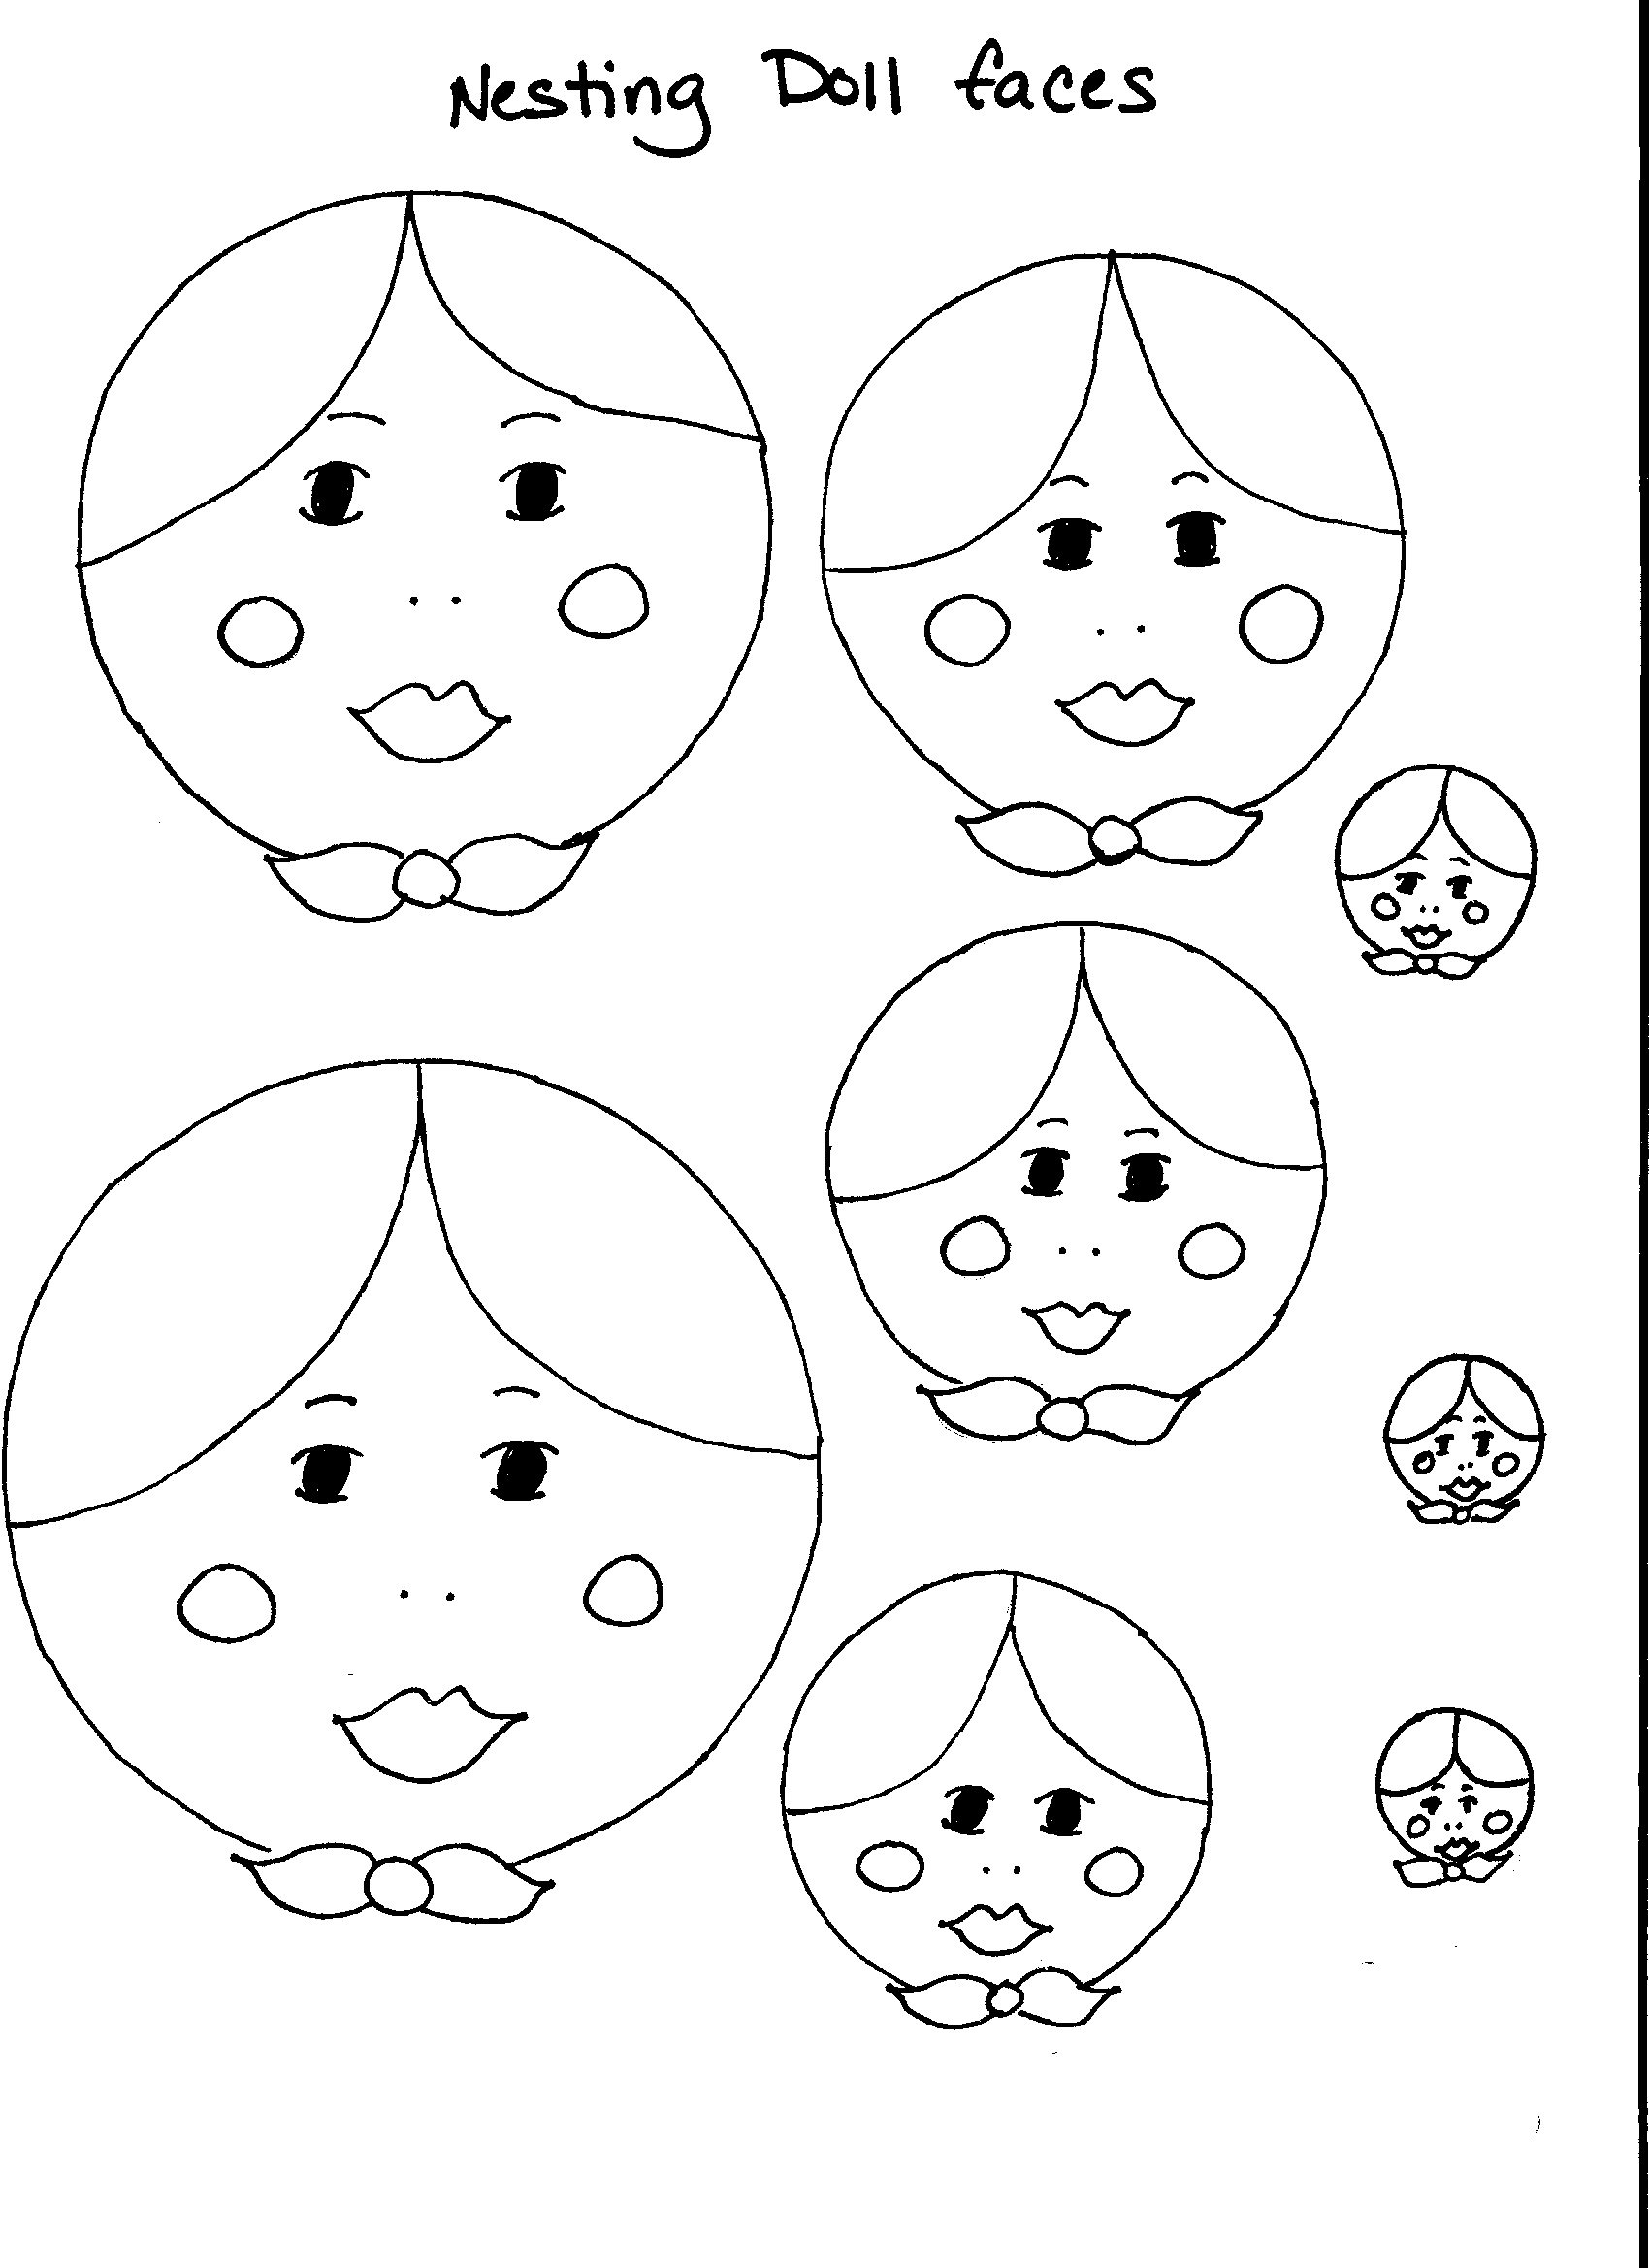 Dolls Faces Drawing at GetDrawings.com | Free for personal use Dolls ...